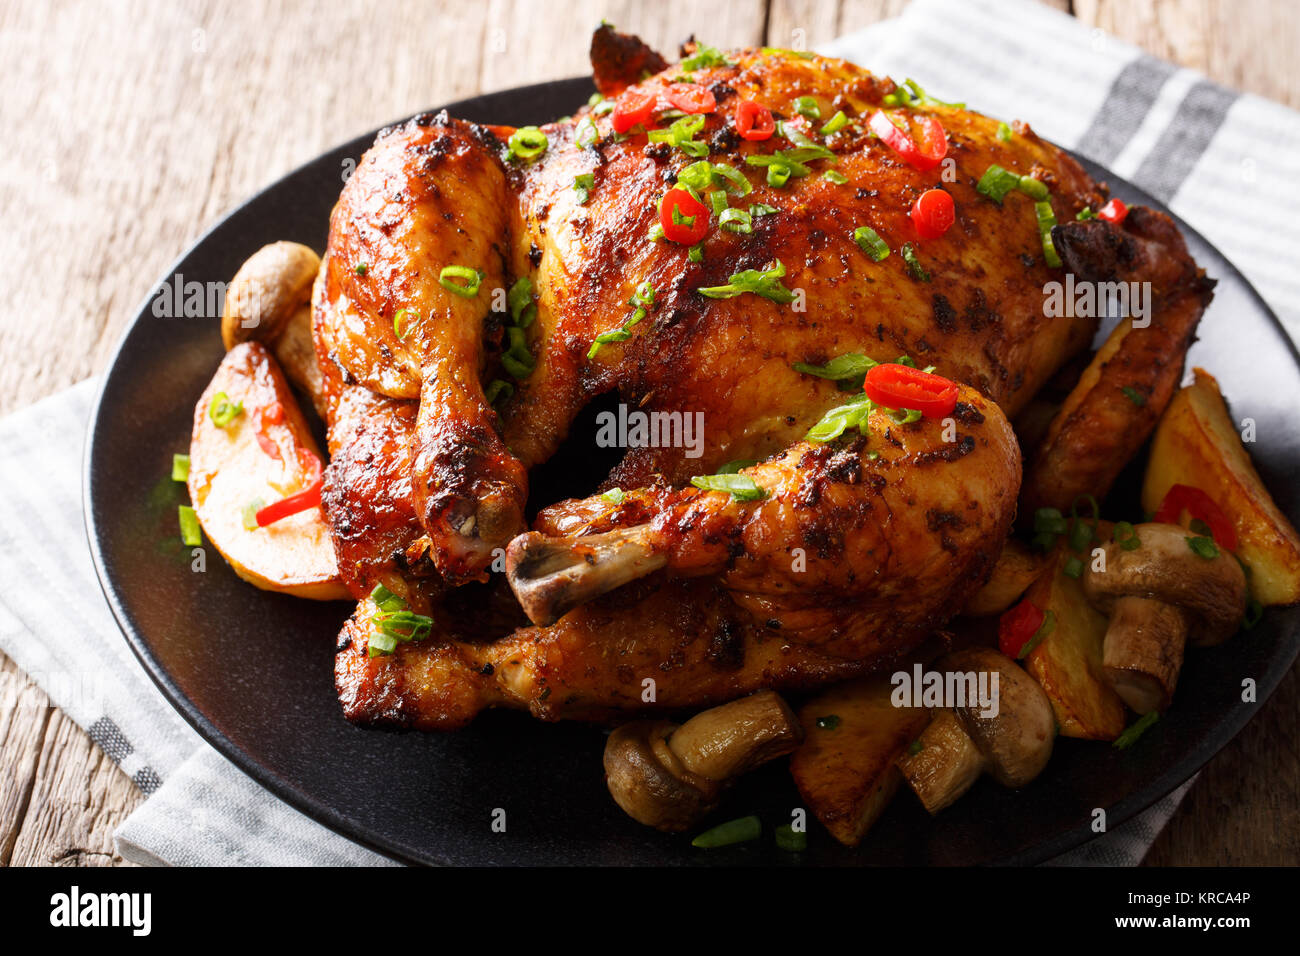 Festive food: fried chicken with mushrooms and potatoes close-up on a plate on a table. horizontal - Stock Image